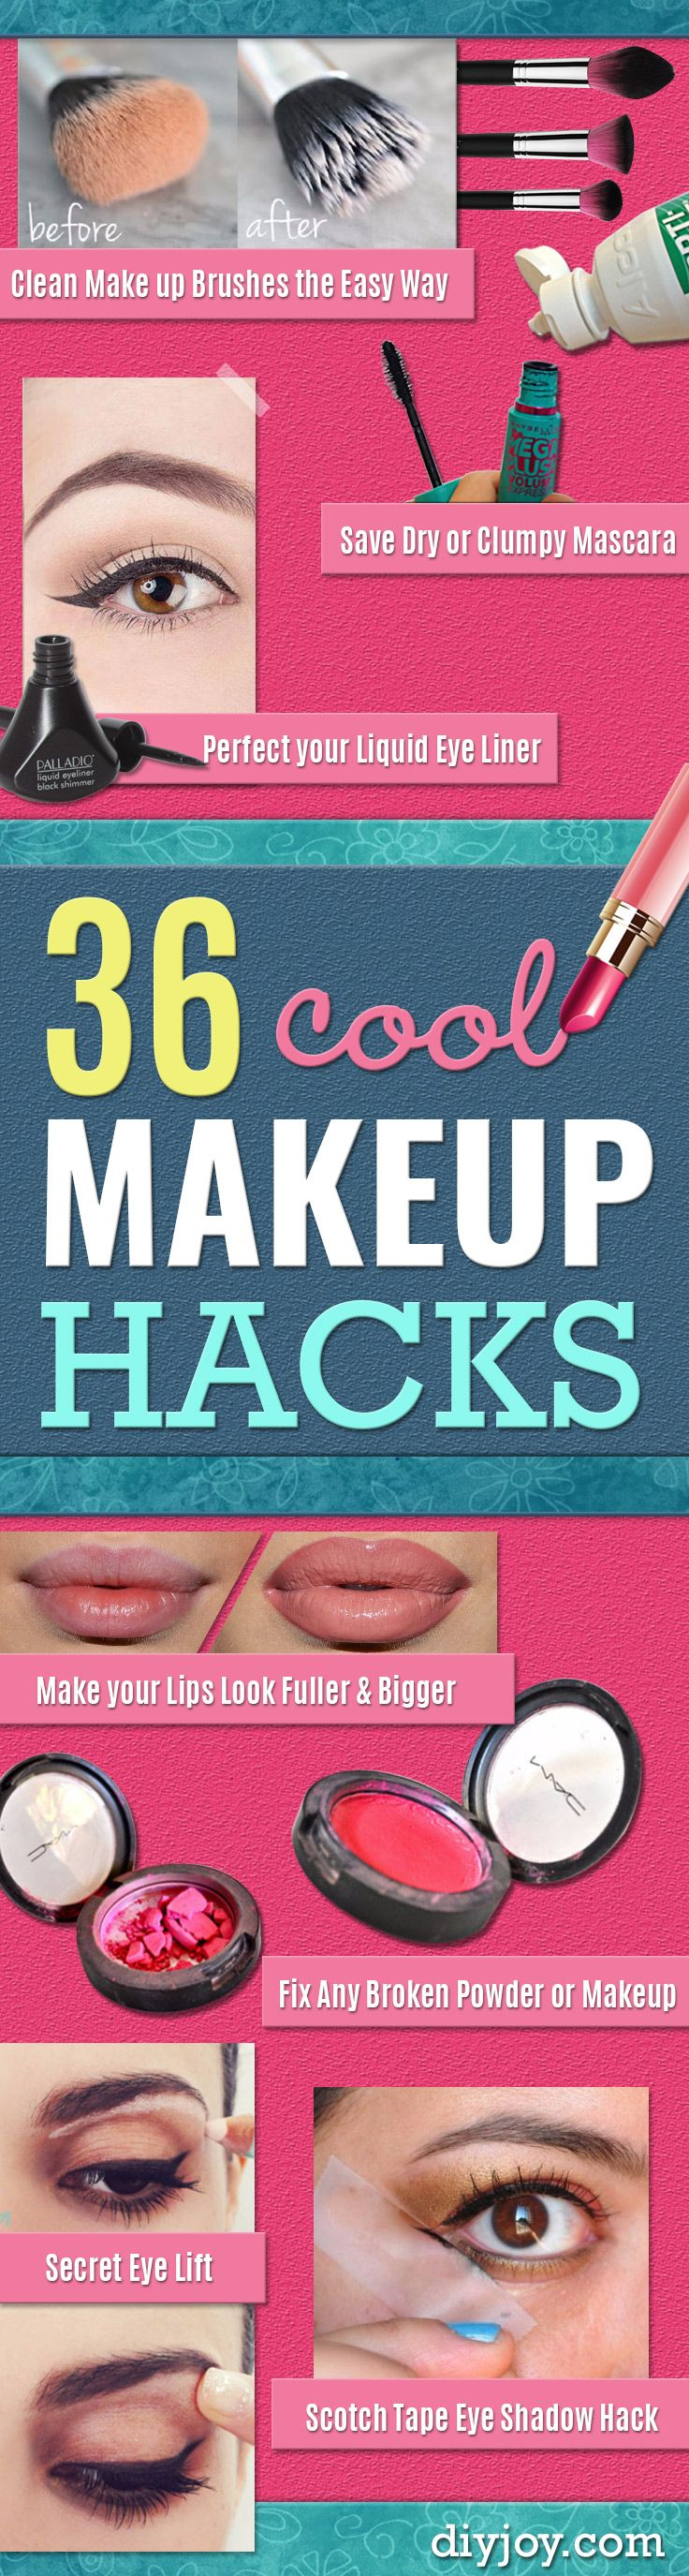 How to fix broken powder makeup with alcohol in four simple steps - 36 Cool Must Try Makeup Hacks